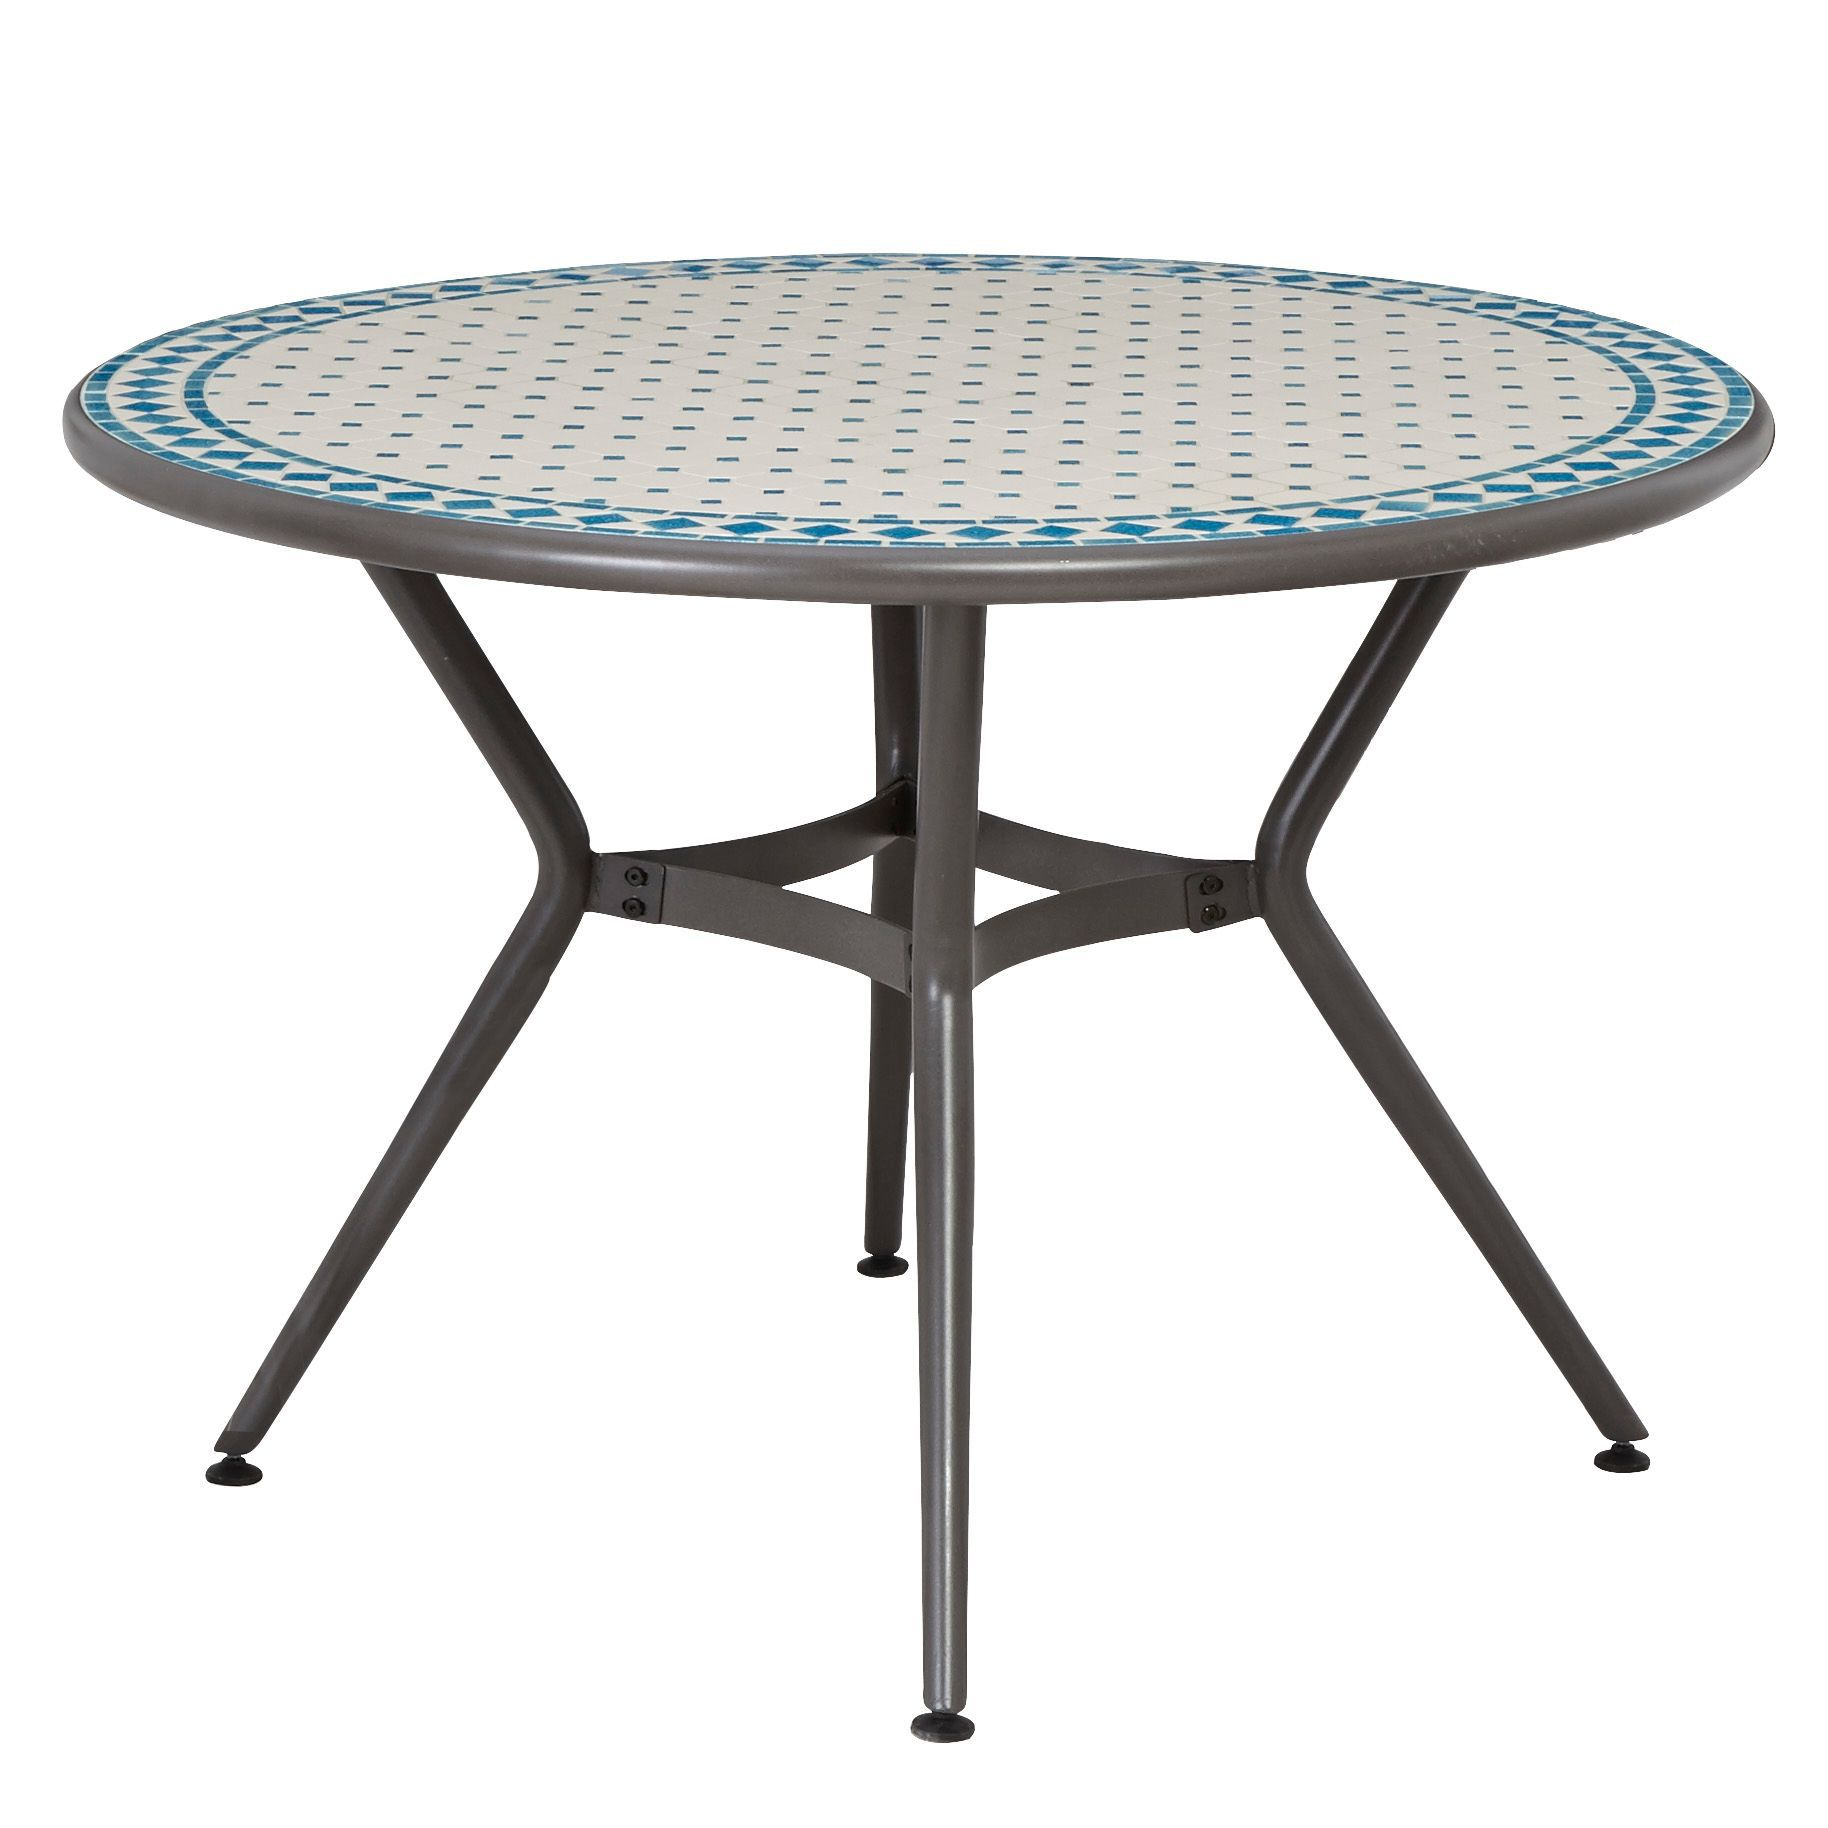 Silene Metal 4 seater Round table